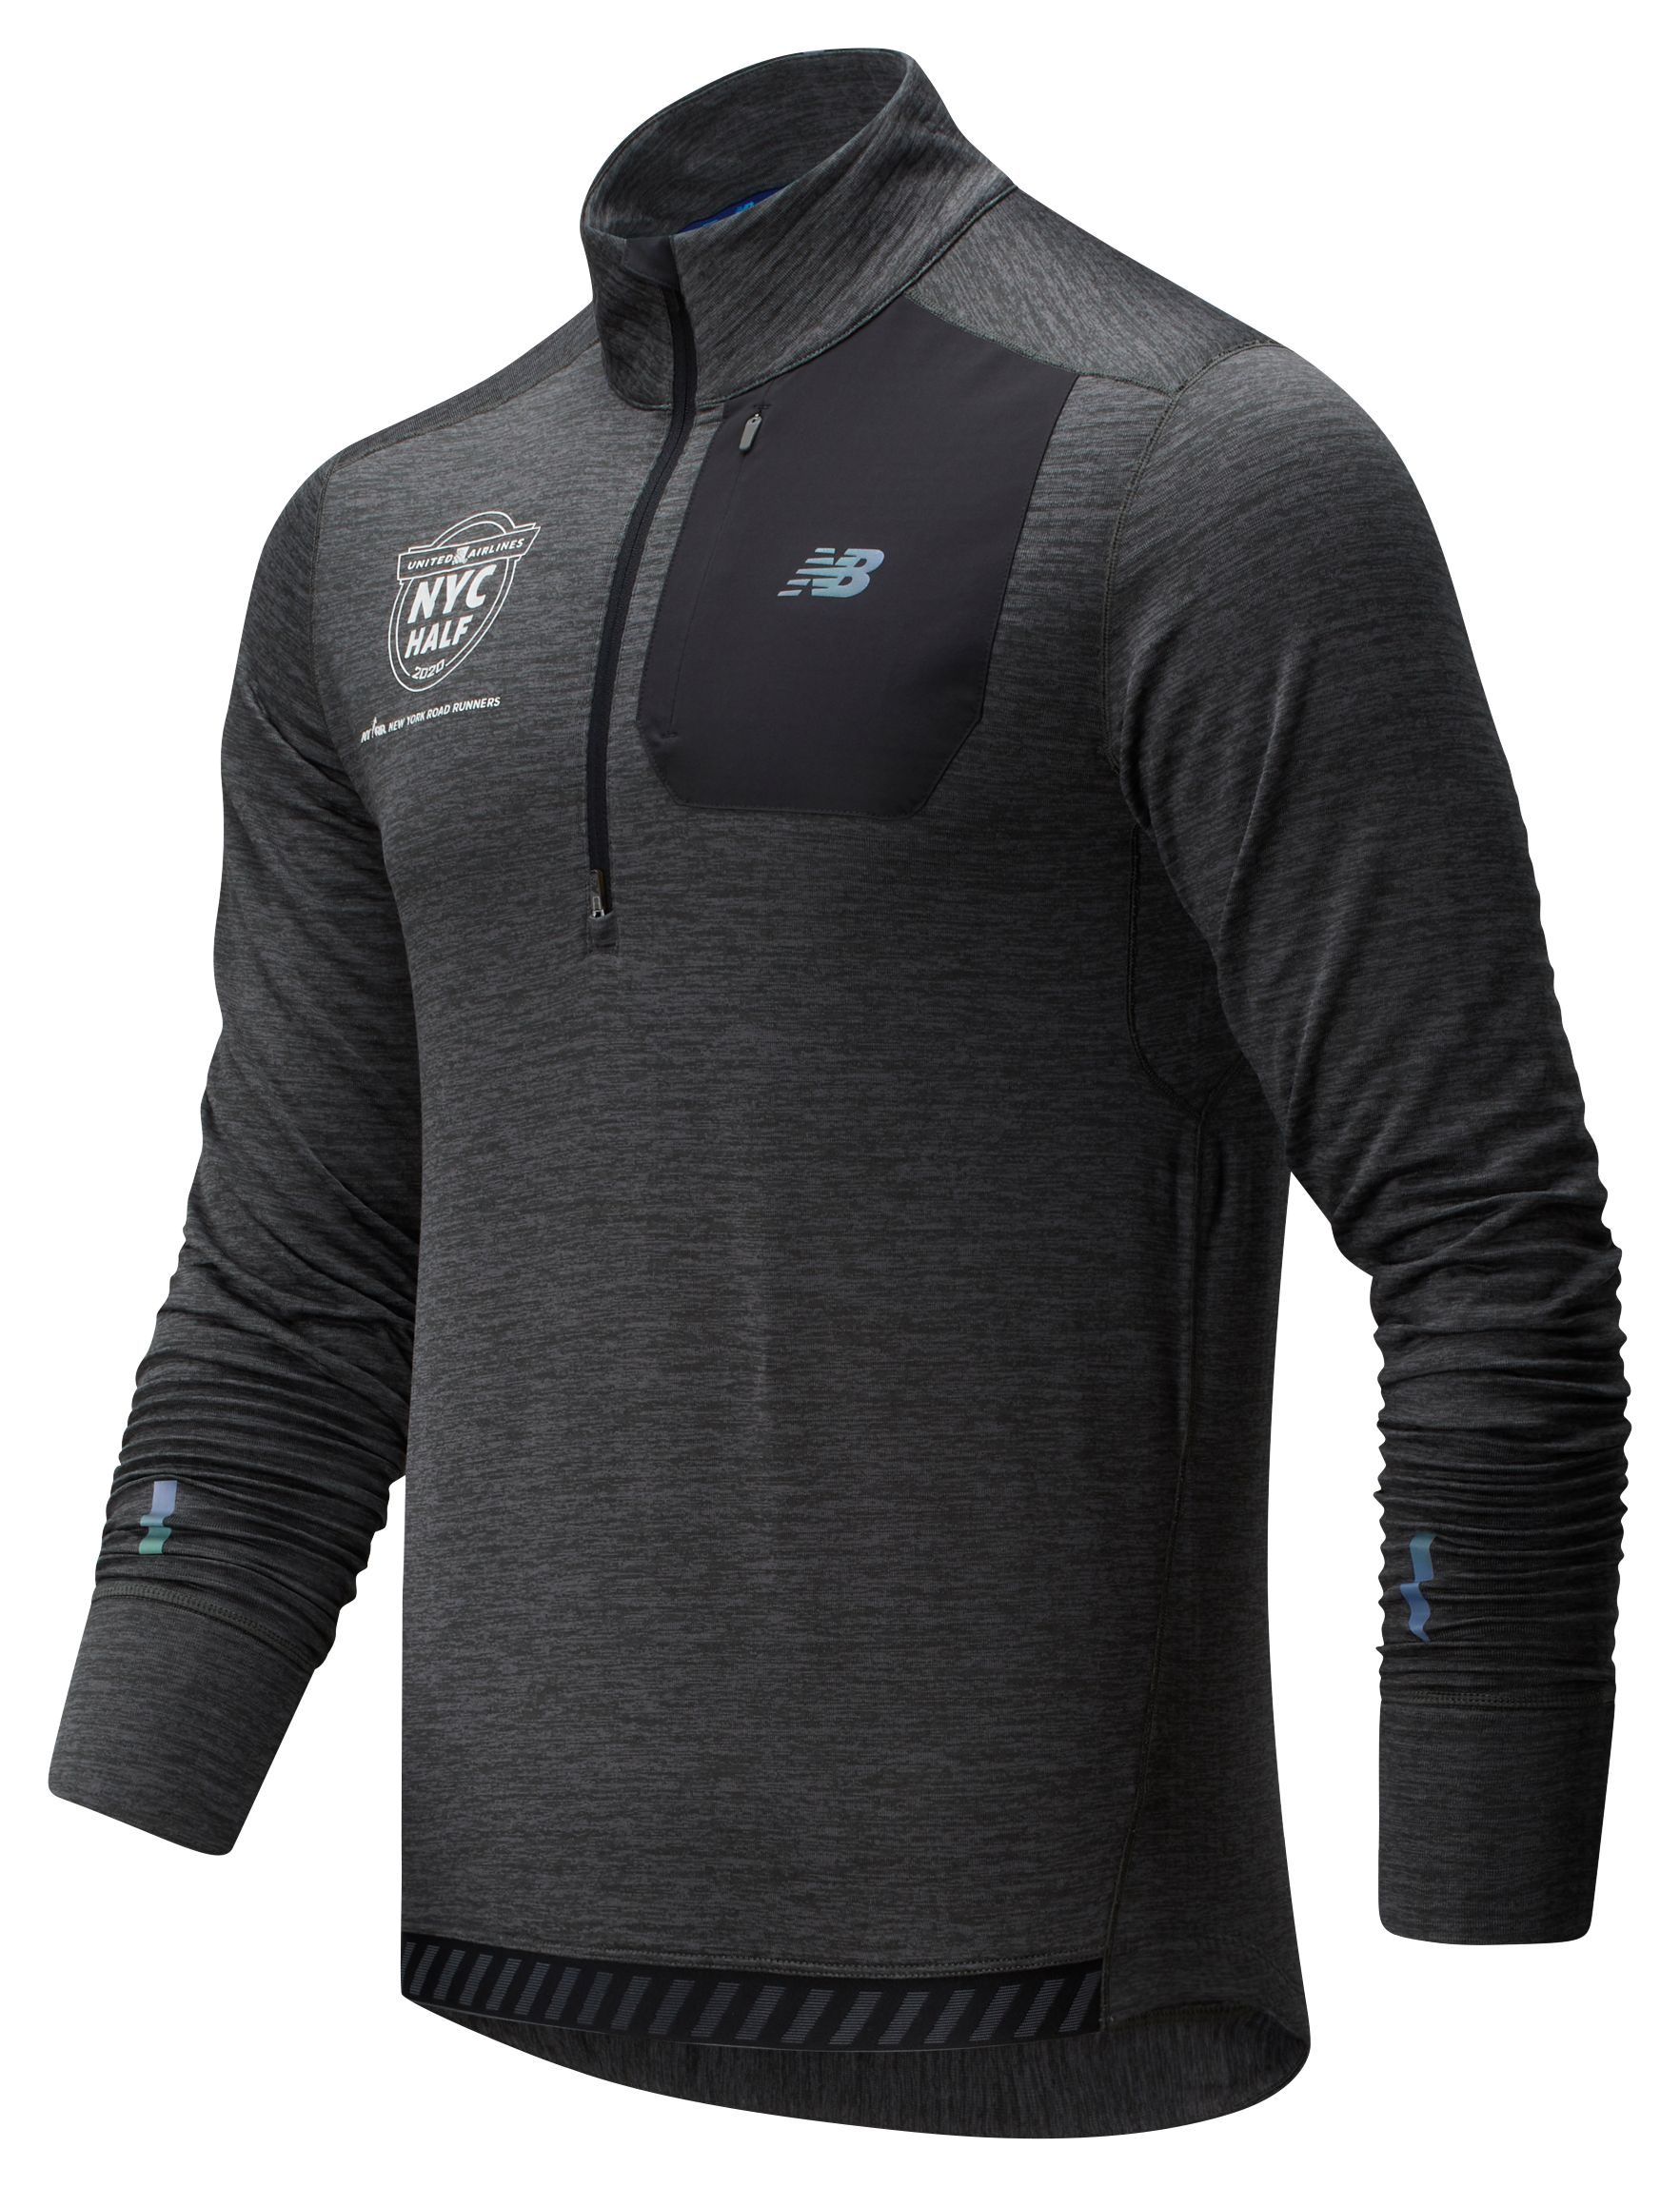 Men's 2020 United Airlines Half NB Heat Grid Half Zip